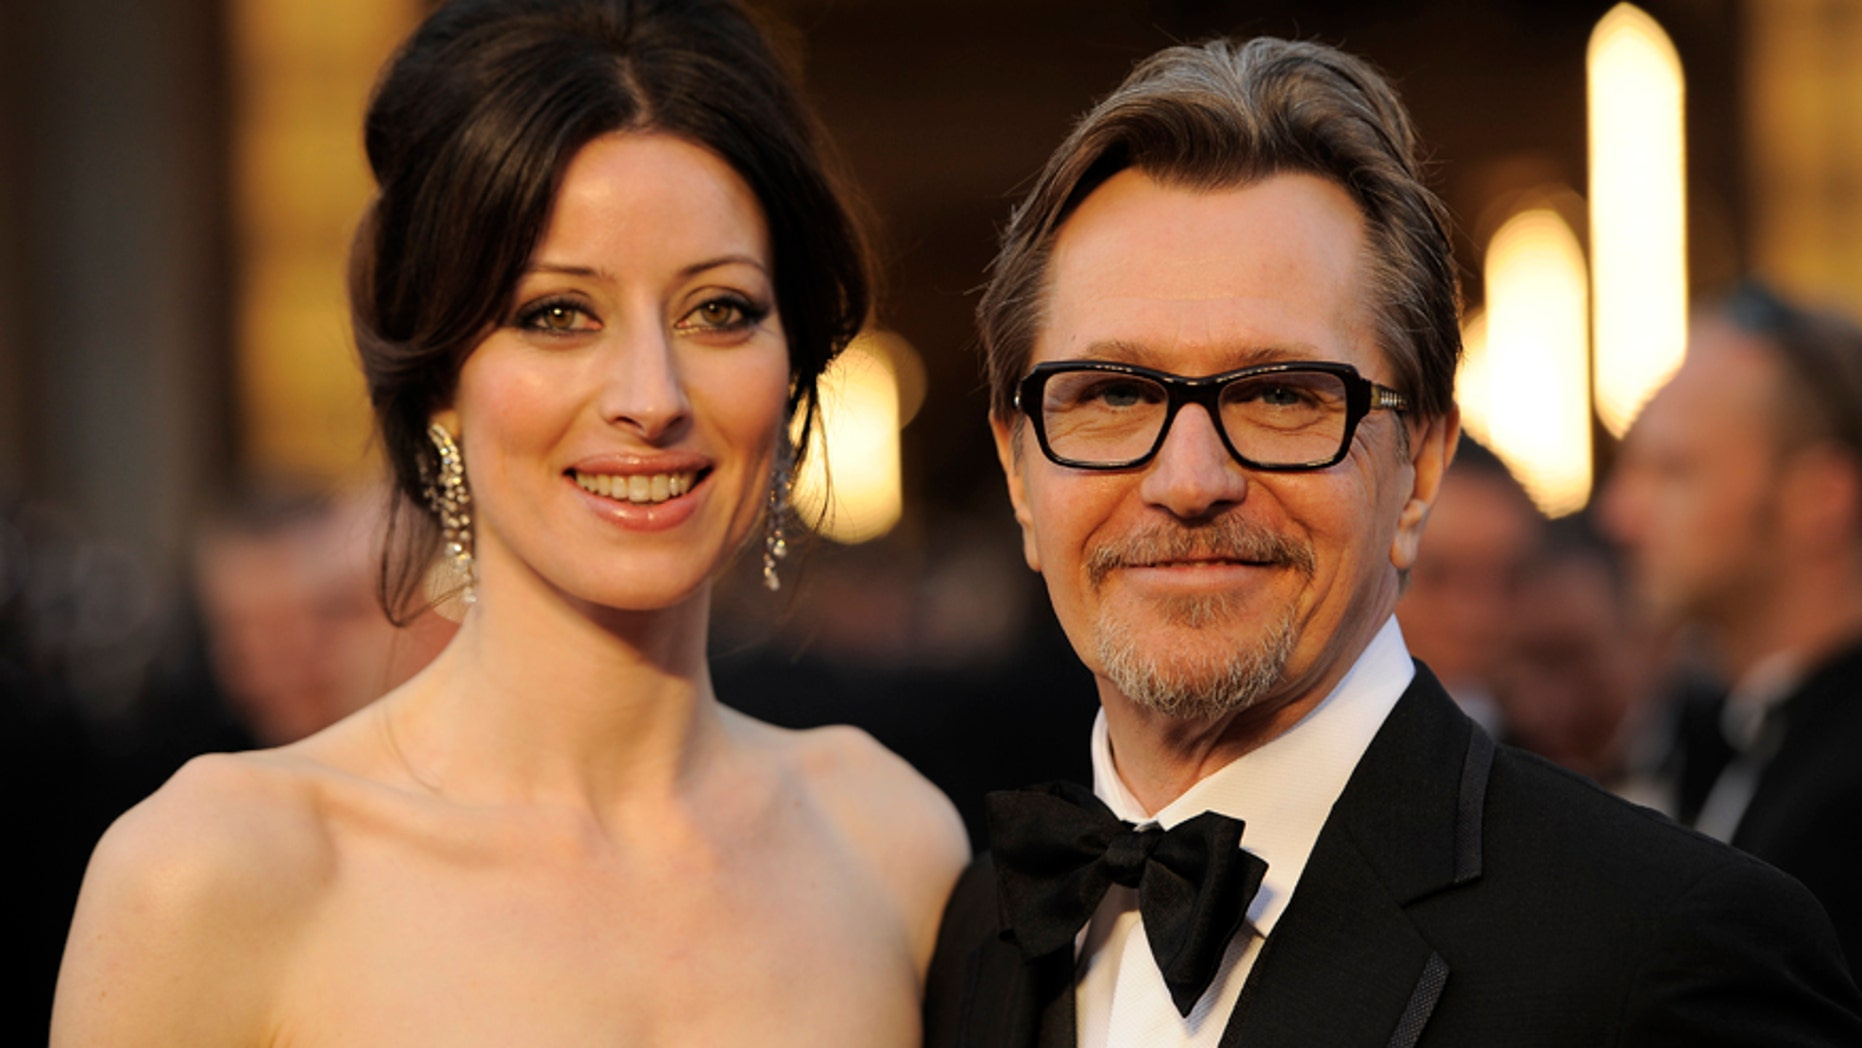 In this Feb. 26, 2012 file photo, Gary Oldman, right, and Alexandra Edenborough arrive before the 84th Academy Awards in the Hollywood section of Los Angeles.